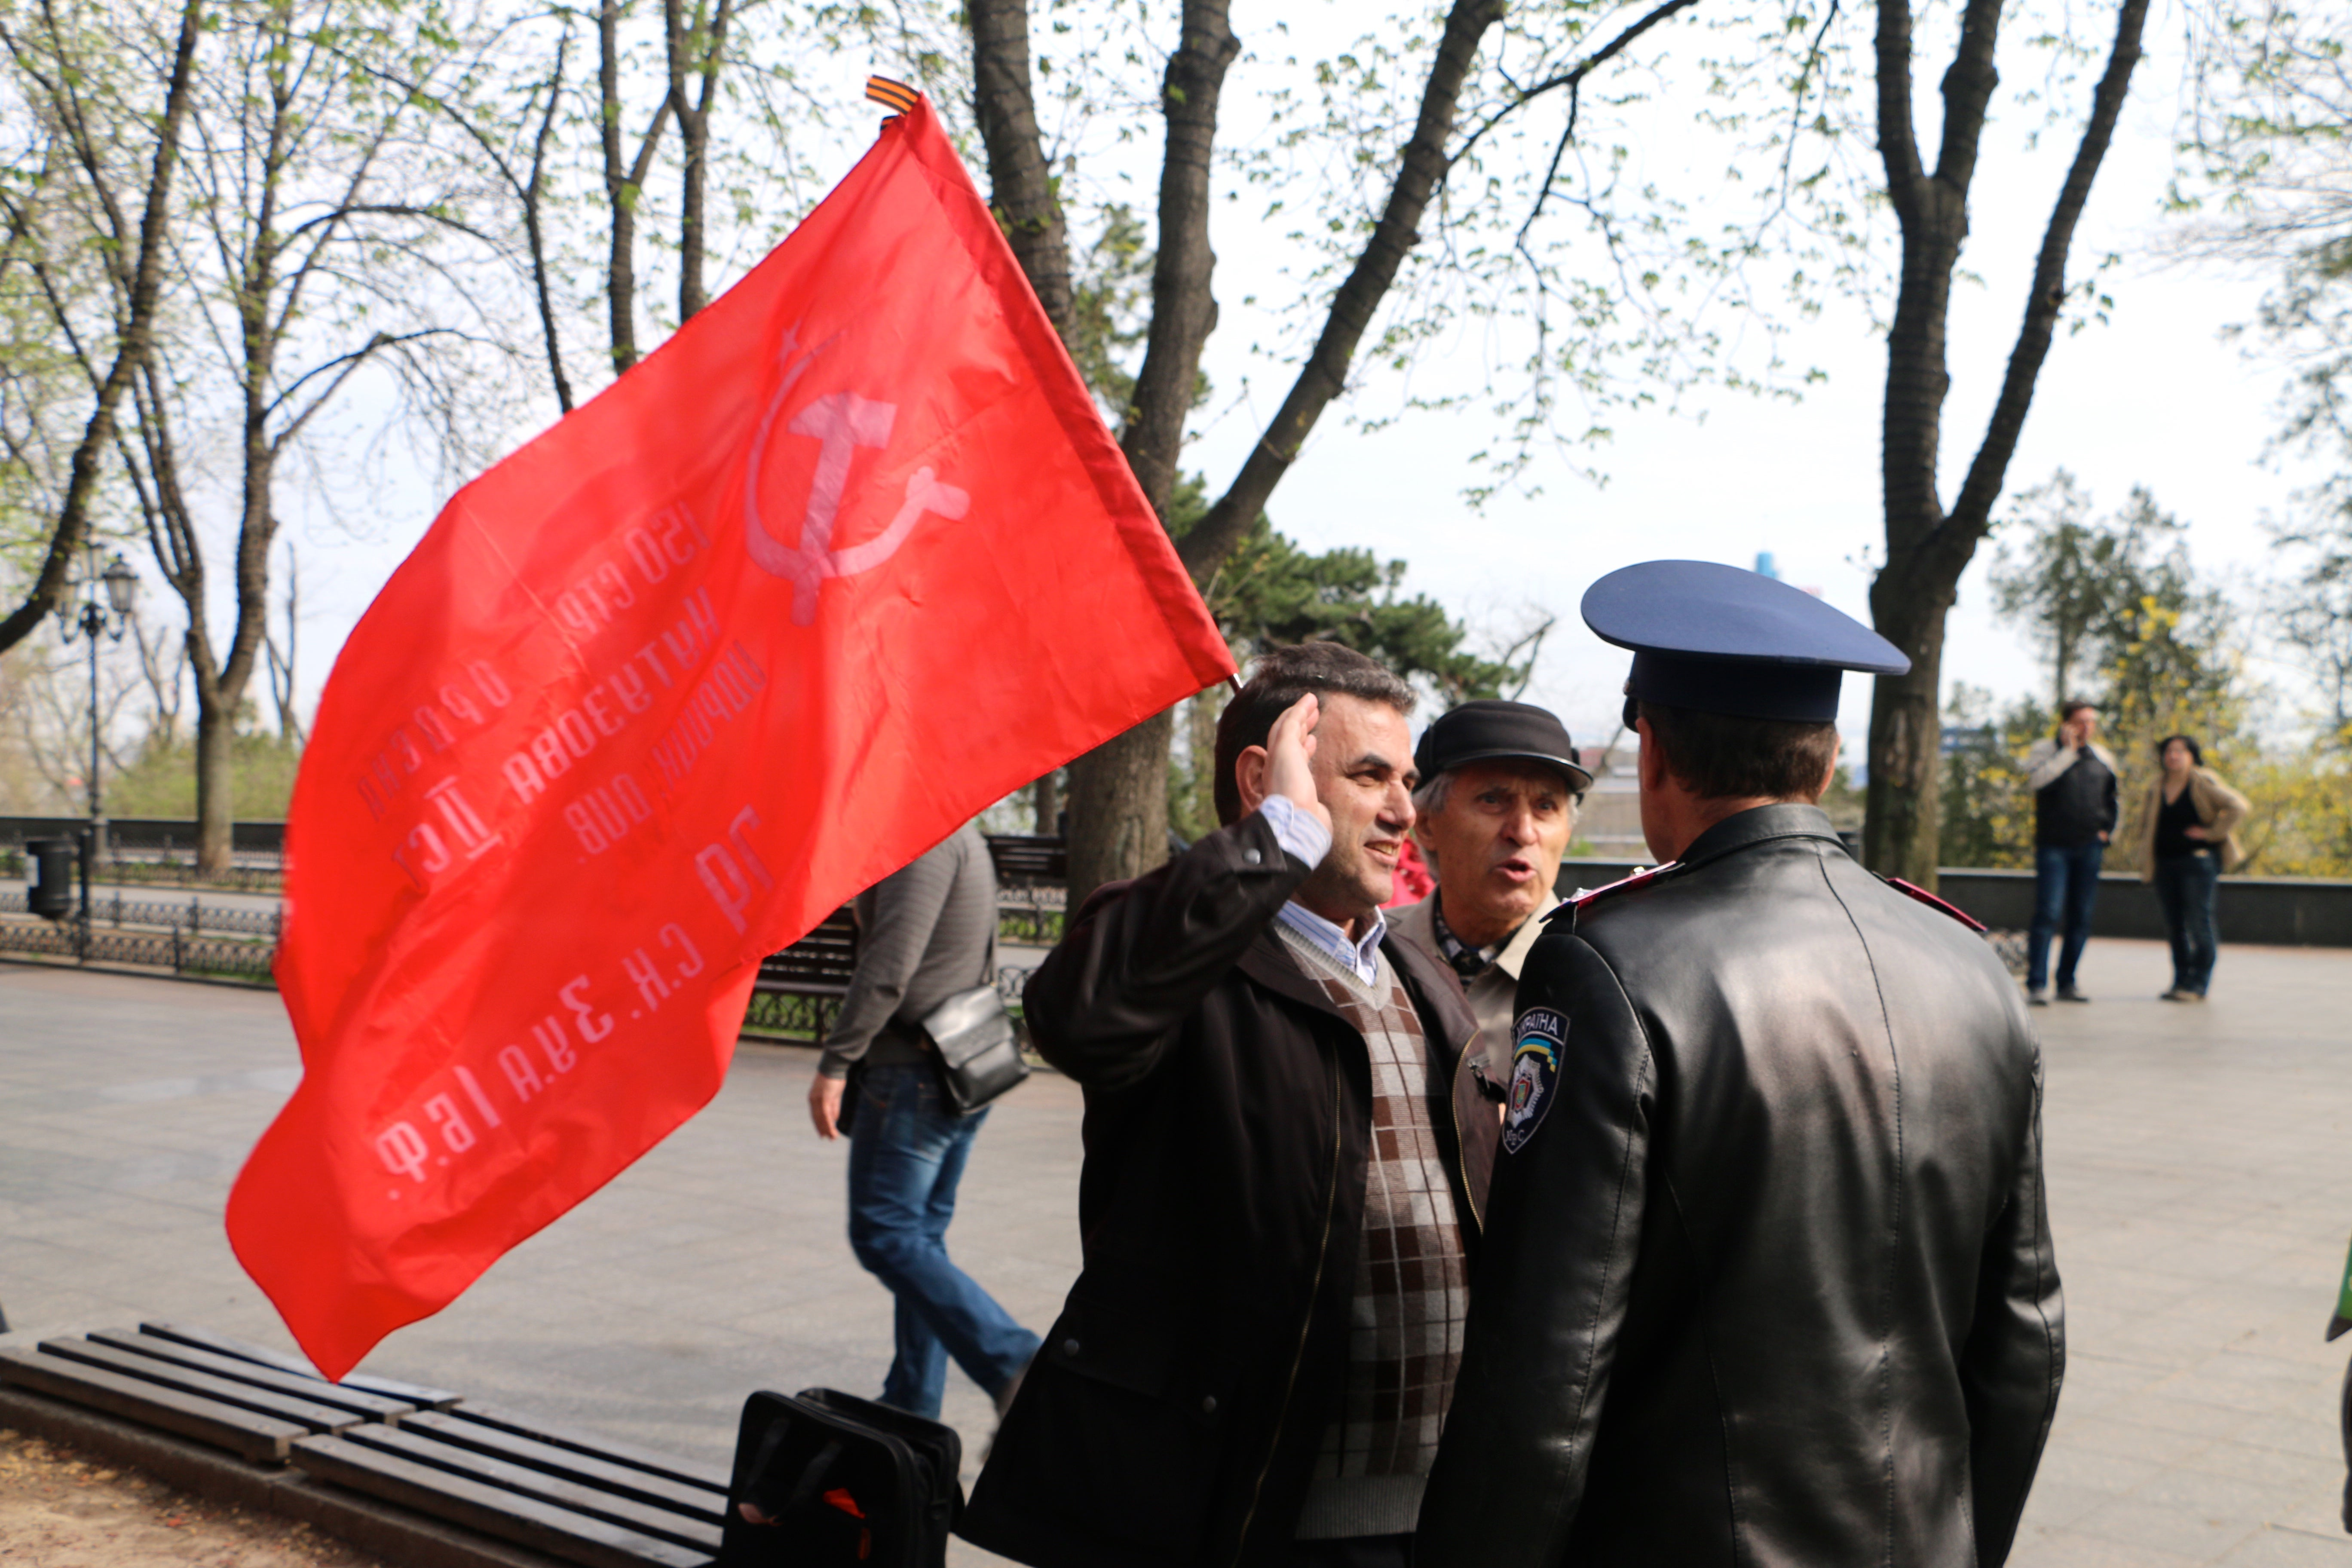 A police officer tells Communist Party members to put away a Soviet flag in Odessa, Ukraine. (Photo: Nolan Peterson/The Daily Signal)